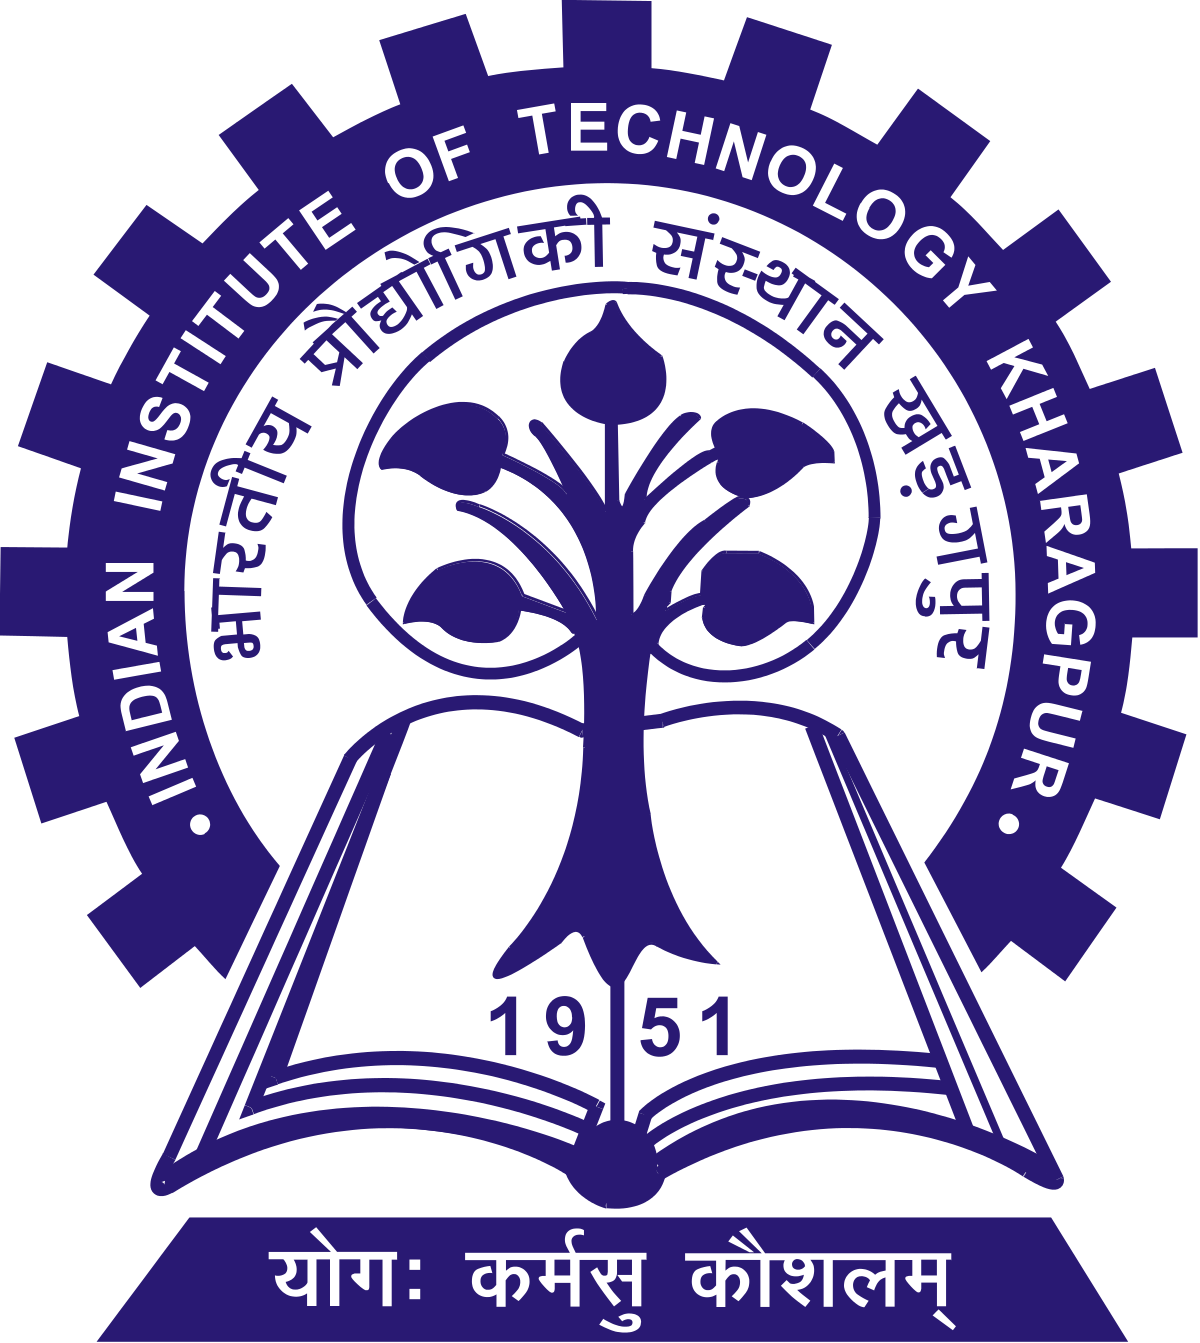 Course on Mining Technology, Safety, Legislation Including the Latest Amendment at IIT Kharagpur [Sept 8-12]: Register by Sept 1